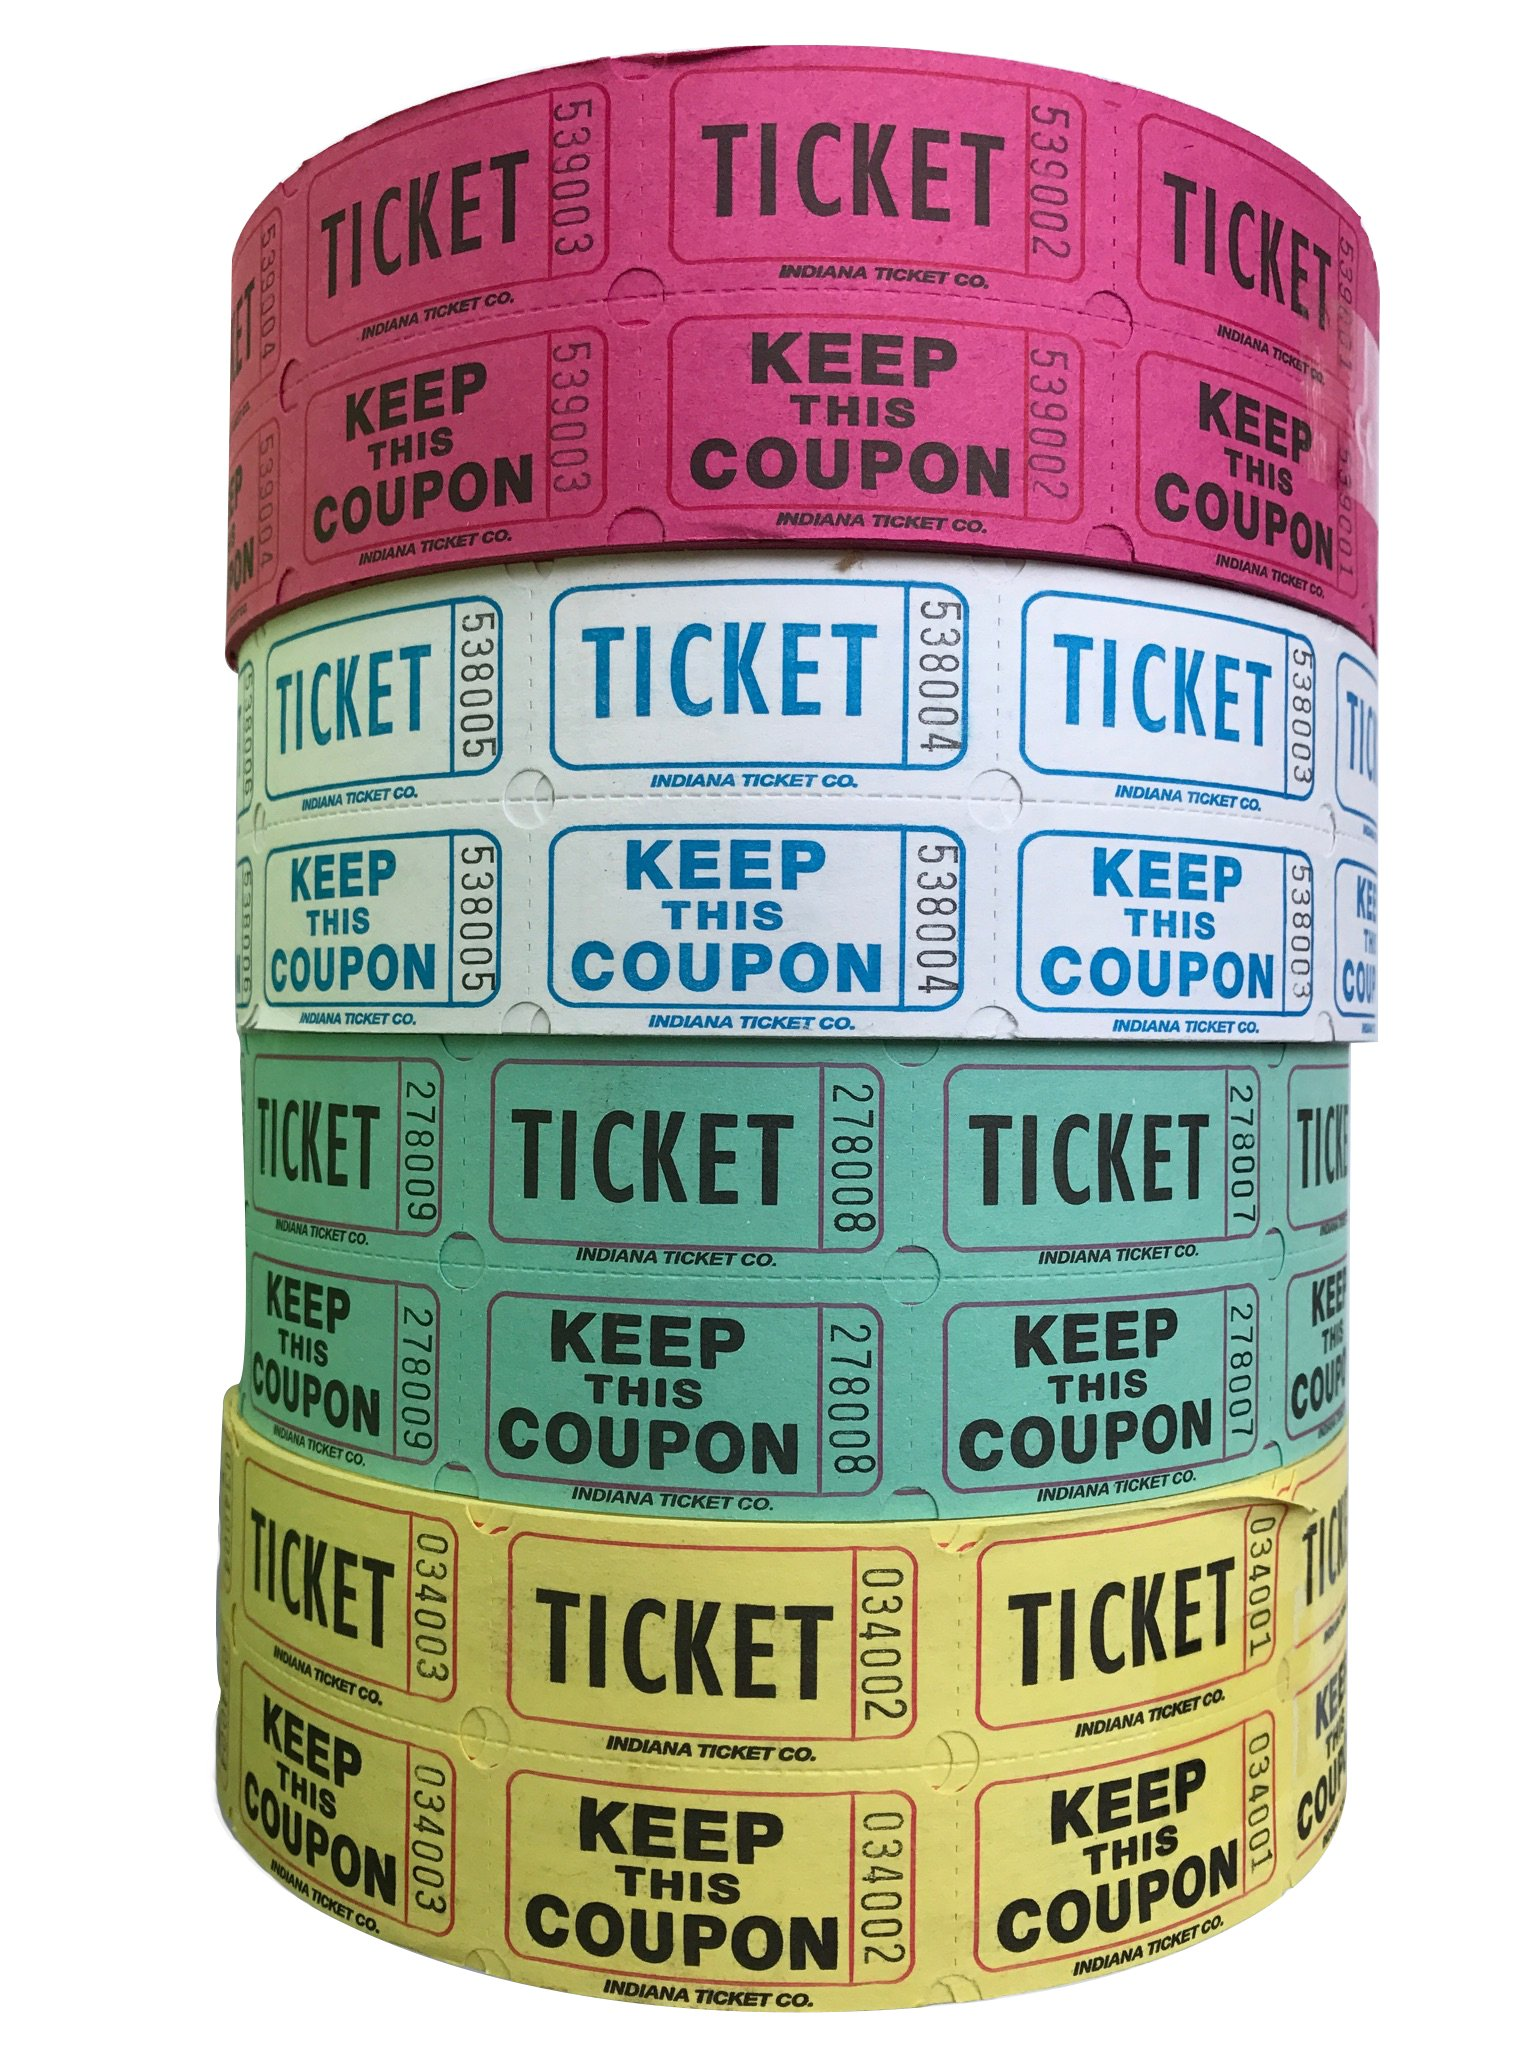 Raffle Tickets - (4 Rolls of 2000 Double Tickets) 8,000 Total 50/50 Raffle Tickets (Purple/Blueberry/Green/Yellow)) by Indiana Ticket Company